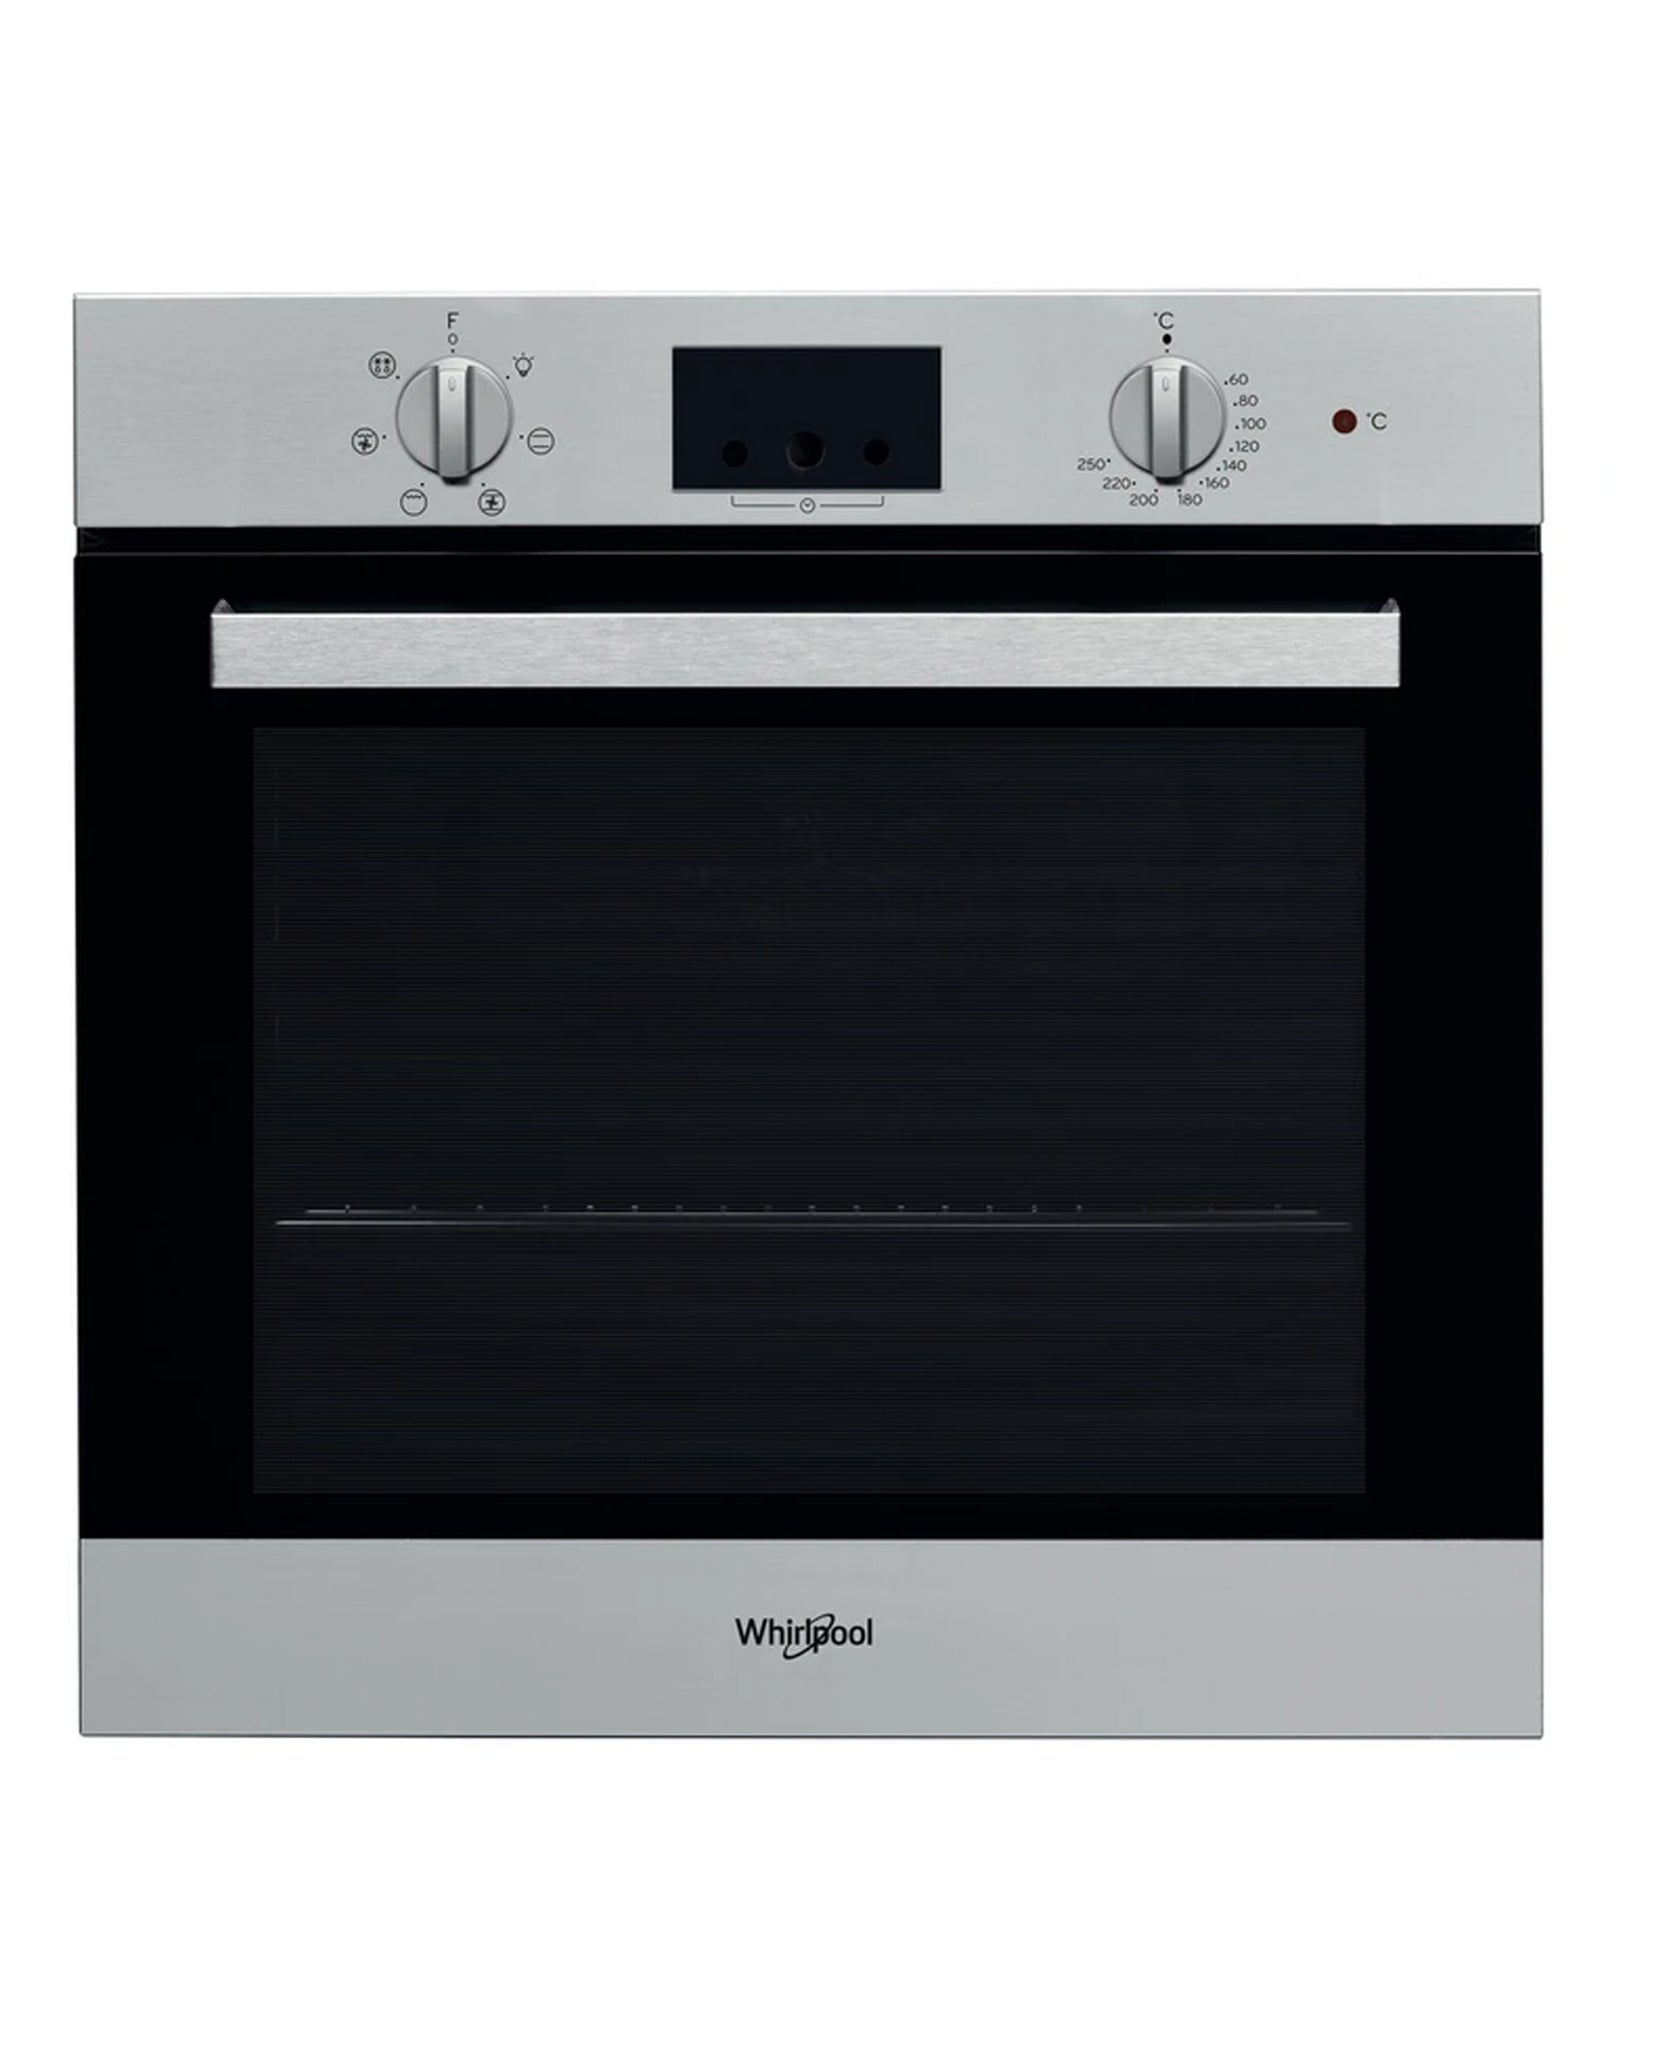 Whirlpool built -in electric oven: inox colour - AKP 605 IX